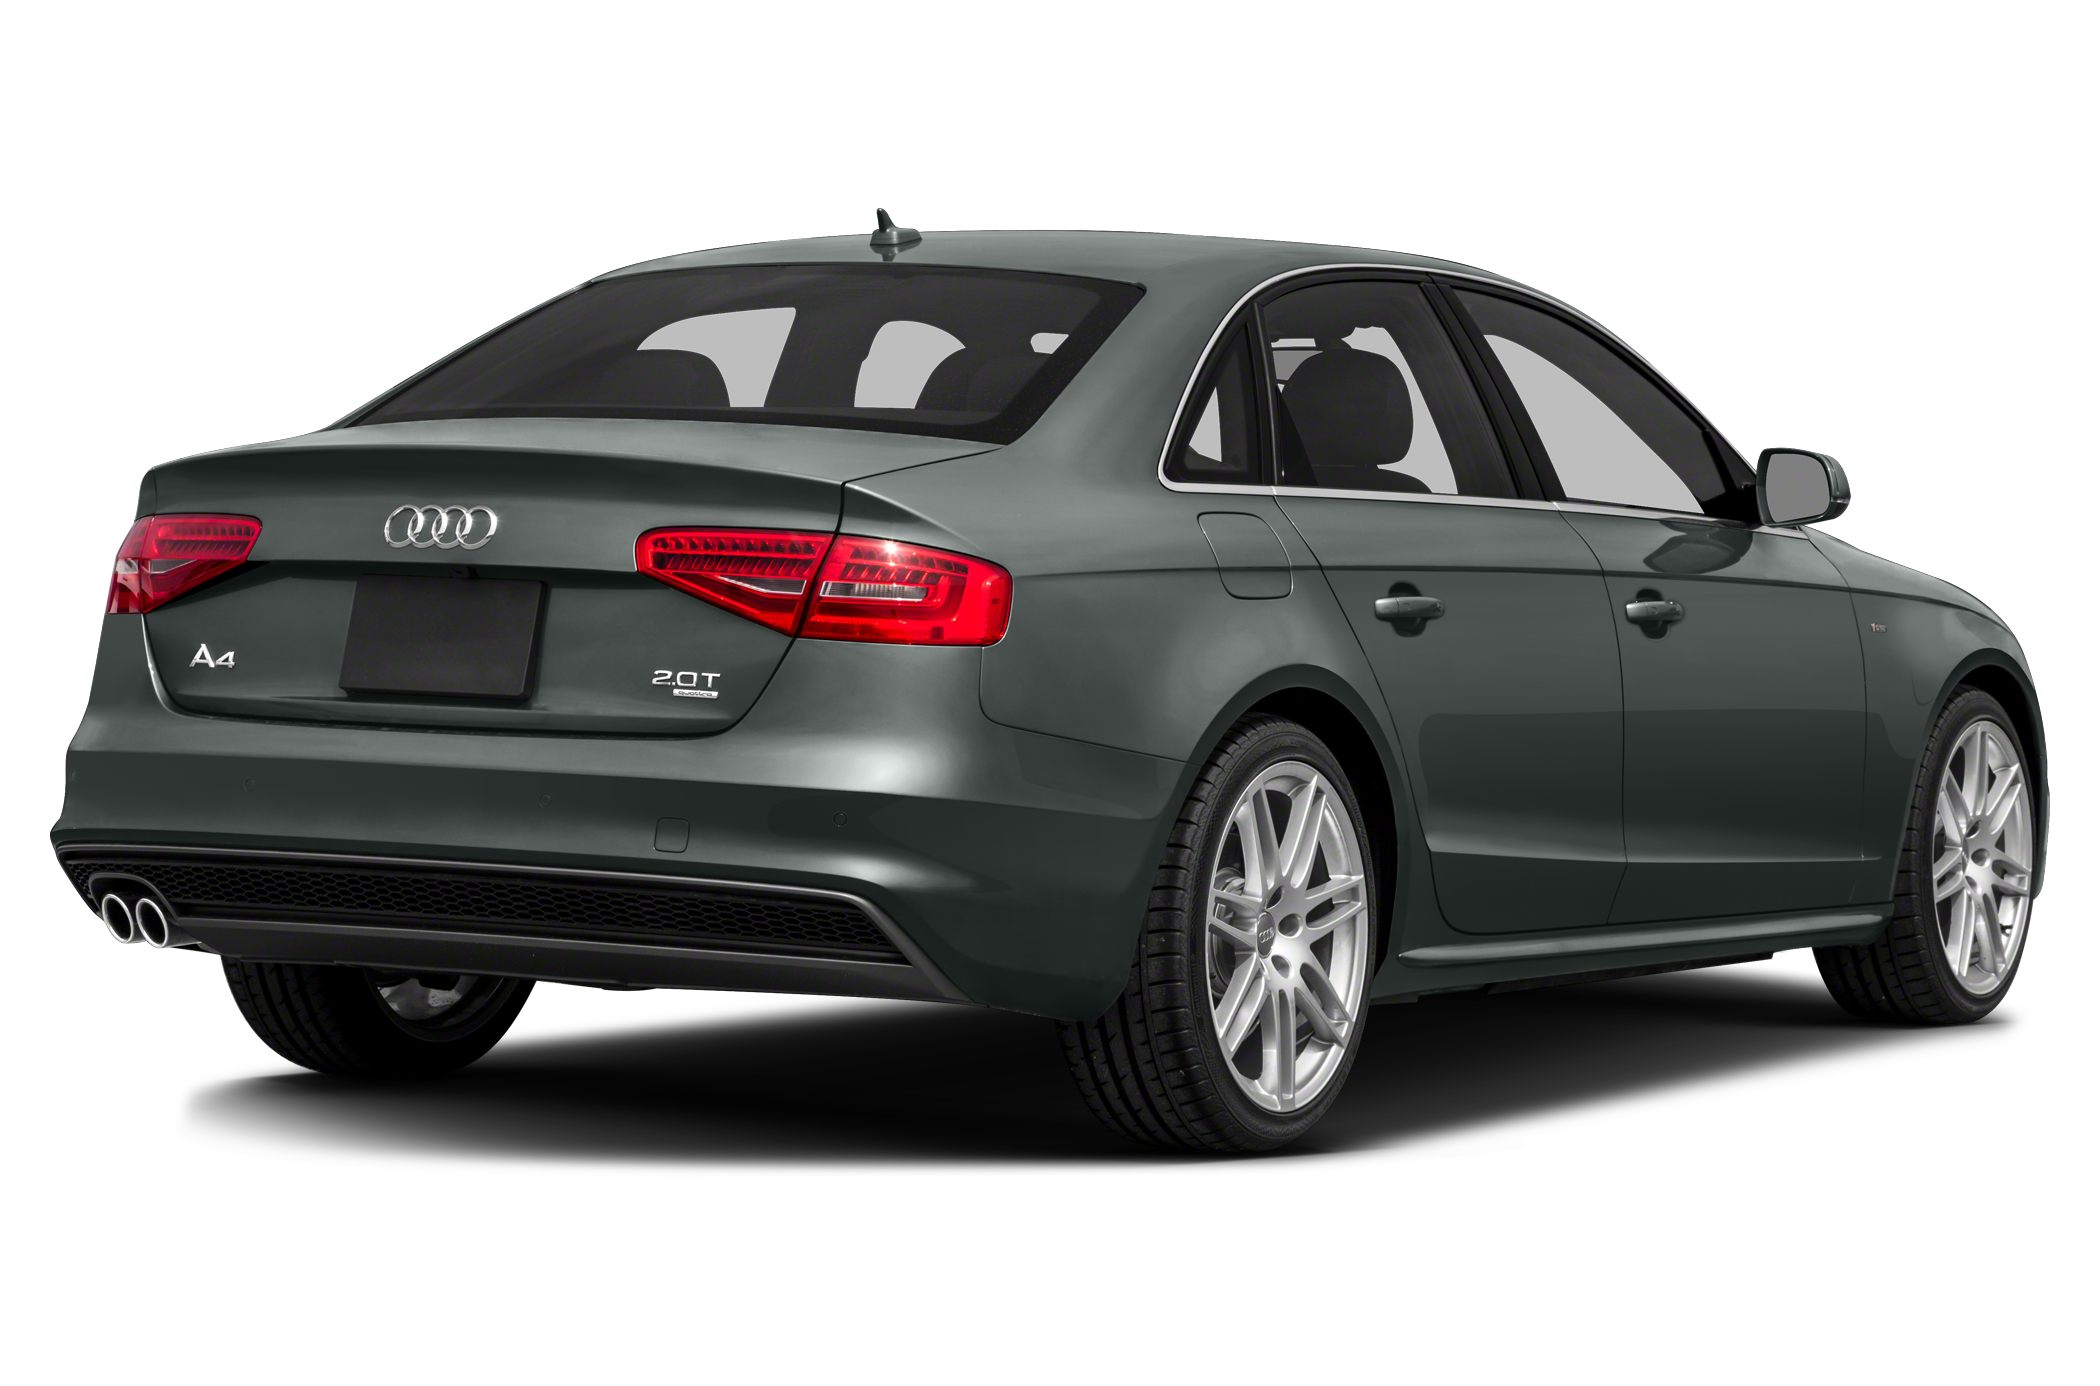 2014 Audi A4 20T quattro Premium Vehicle Options 4WDAWD Electronic Brake Assistance Rear Window